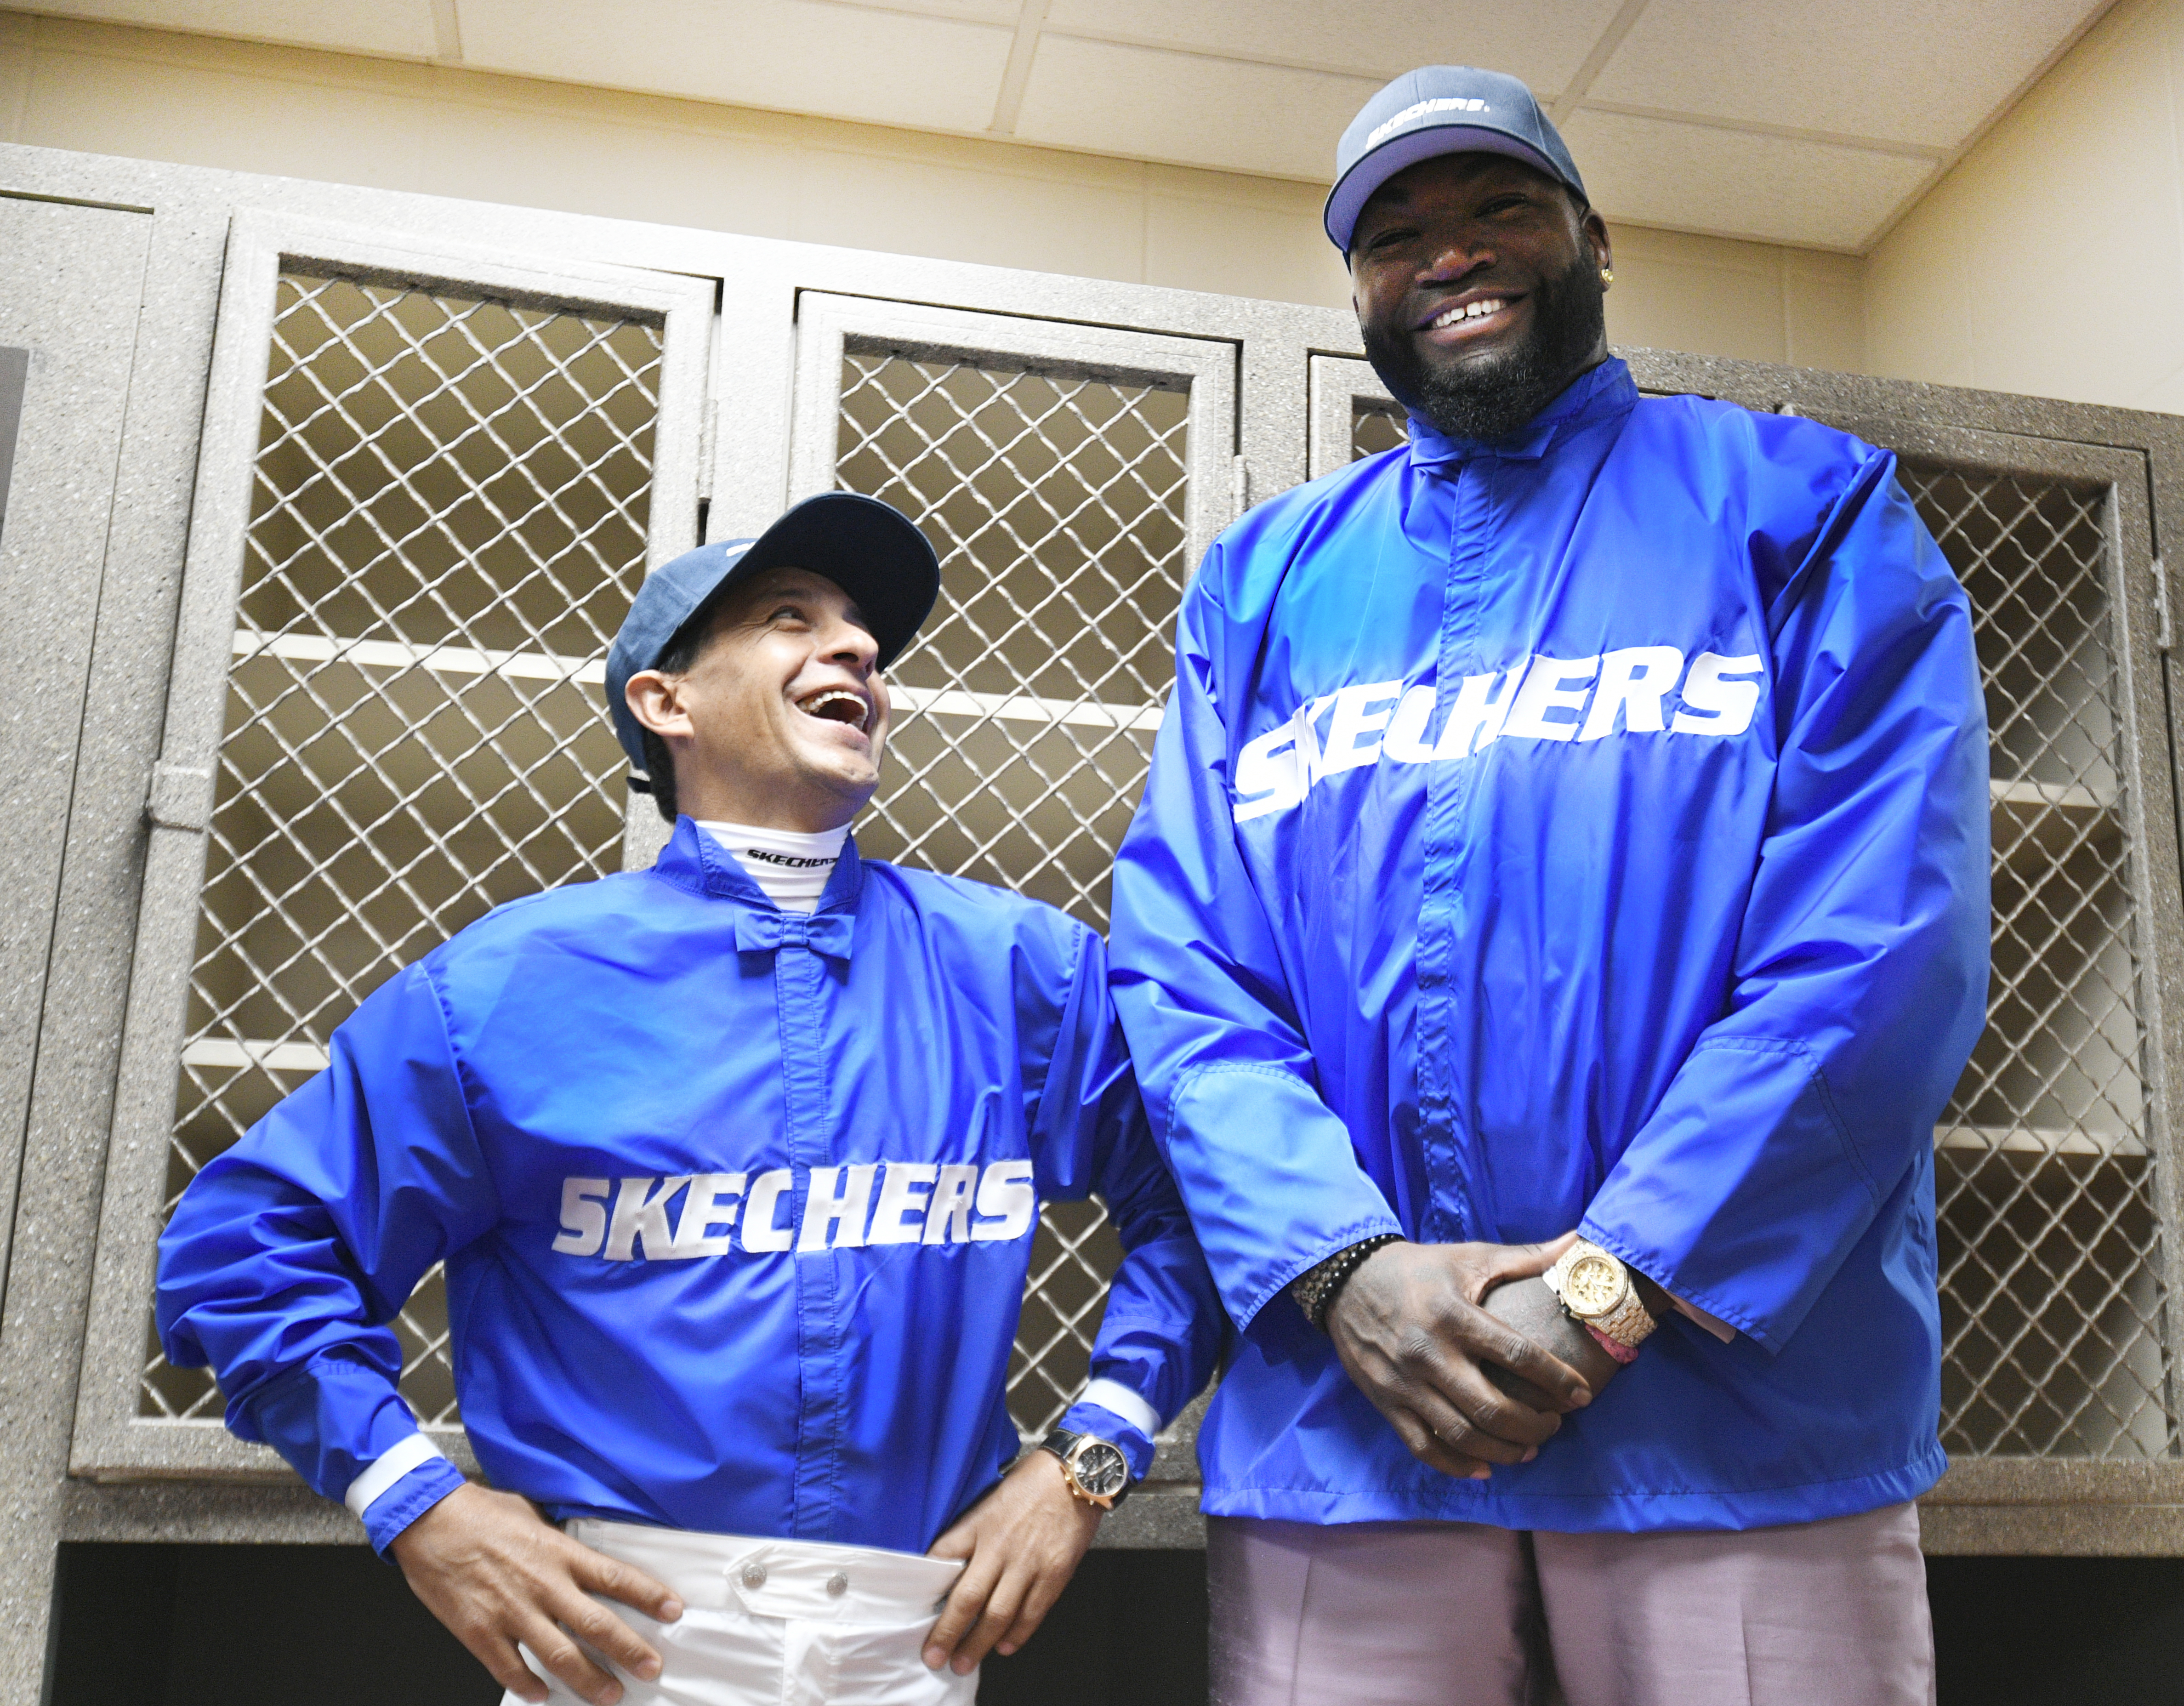 """Looks like David """"Big Papi"""" Ortiz can't hack retirement. The All-Time slugger traded in his baseball uniform for racing silks with 2015 Triple Crown-winning jockey Victor """"Little Papi"""" Espinoza in the Jockey Room at Churchill Downs. Both champions are representing SKECHERS. (Photo: Business Wire)"""